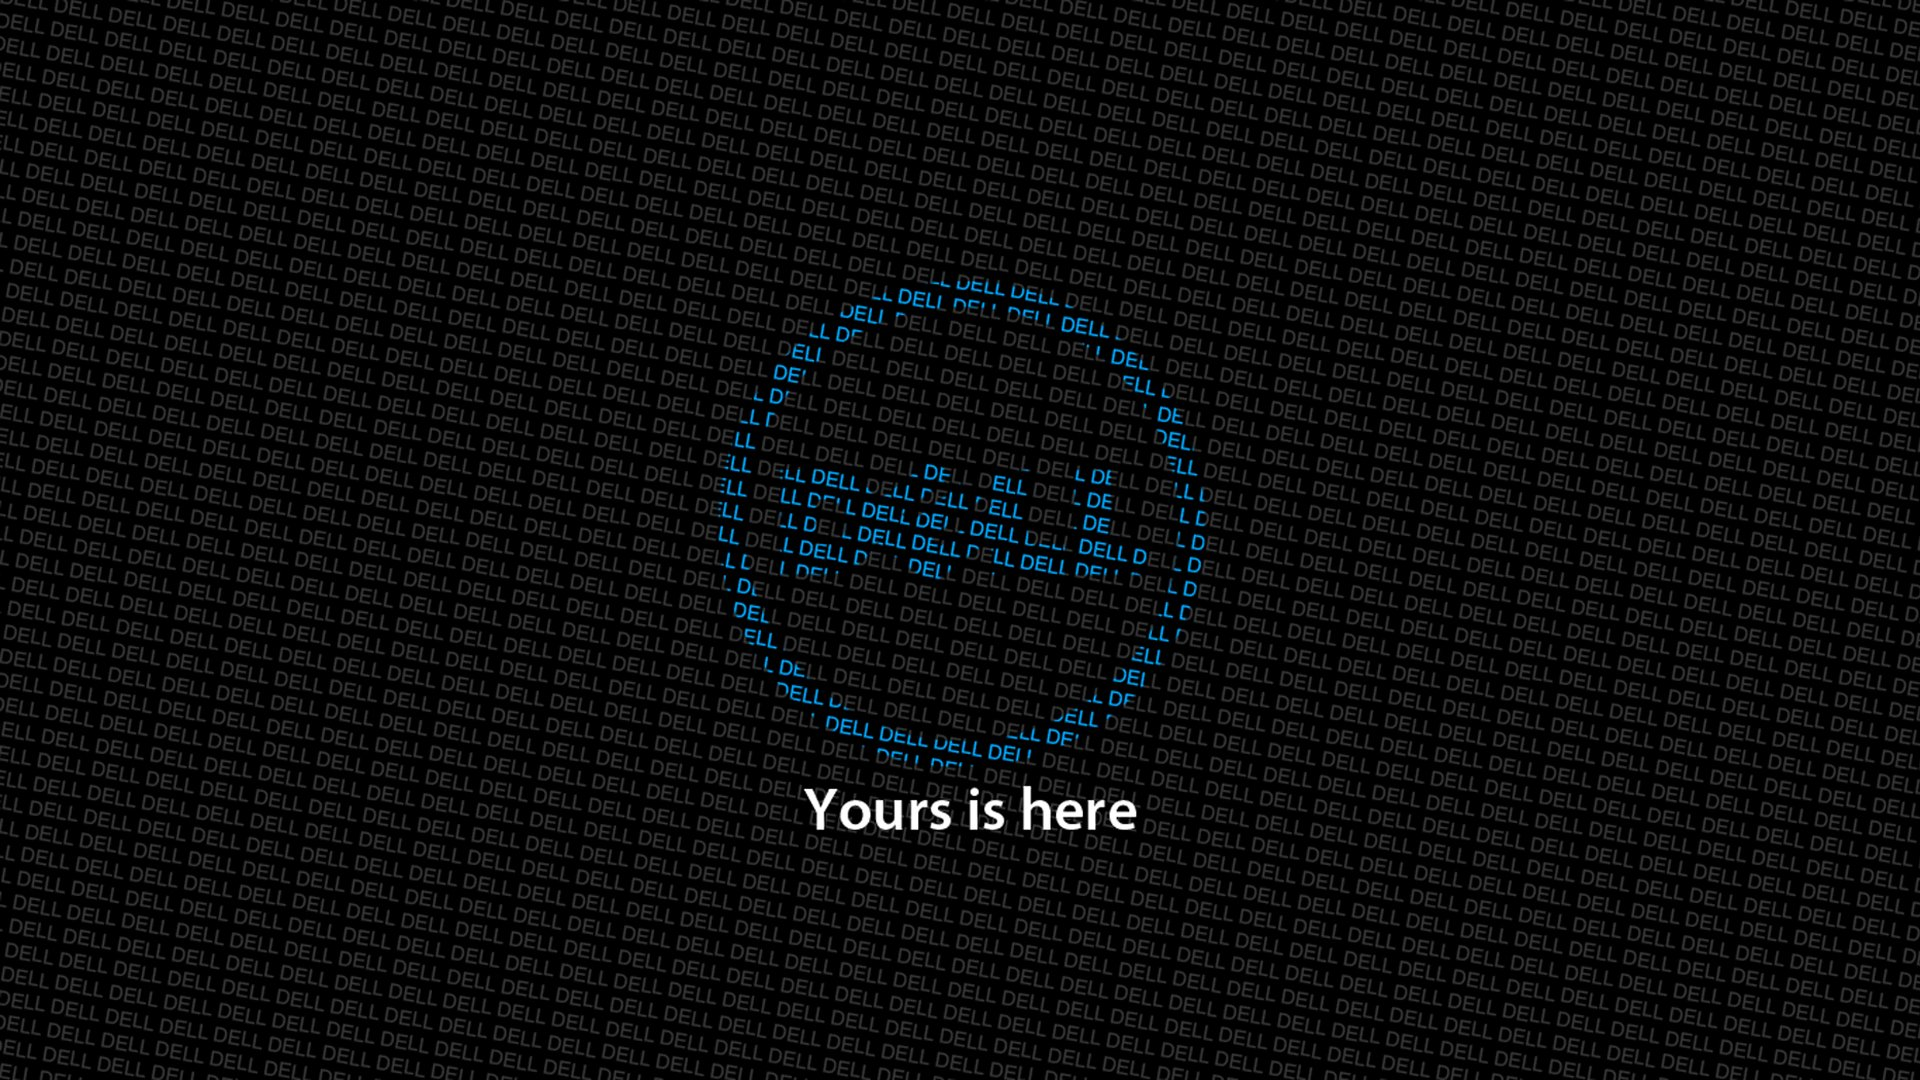 32 dell wallpapers for free download dell wallpaper 15 voltagebd Image collections